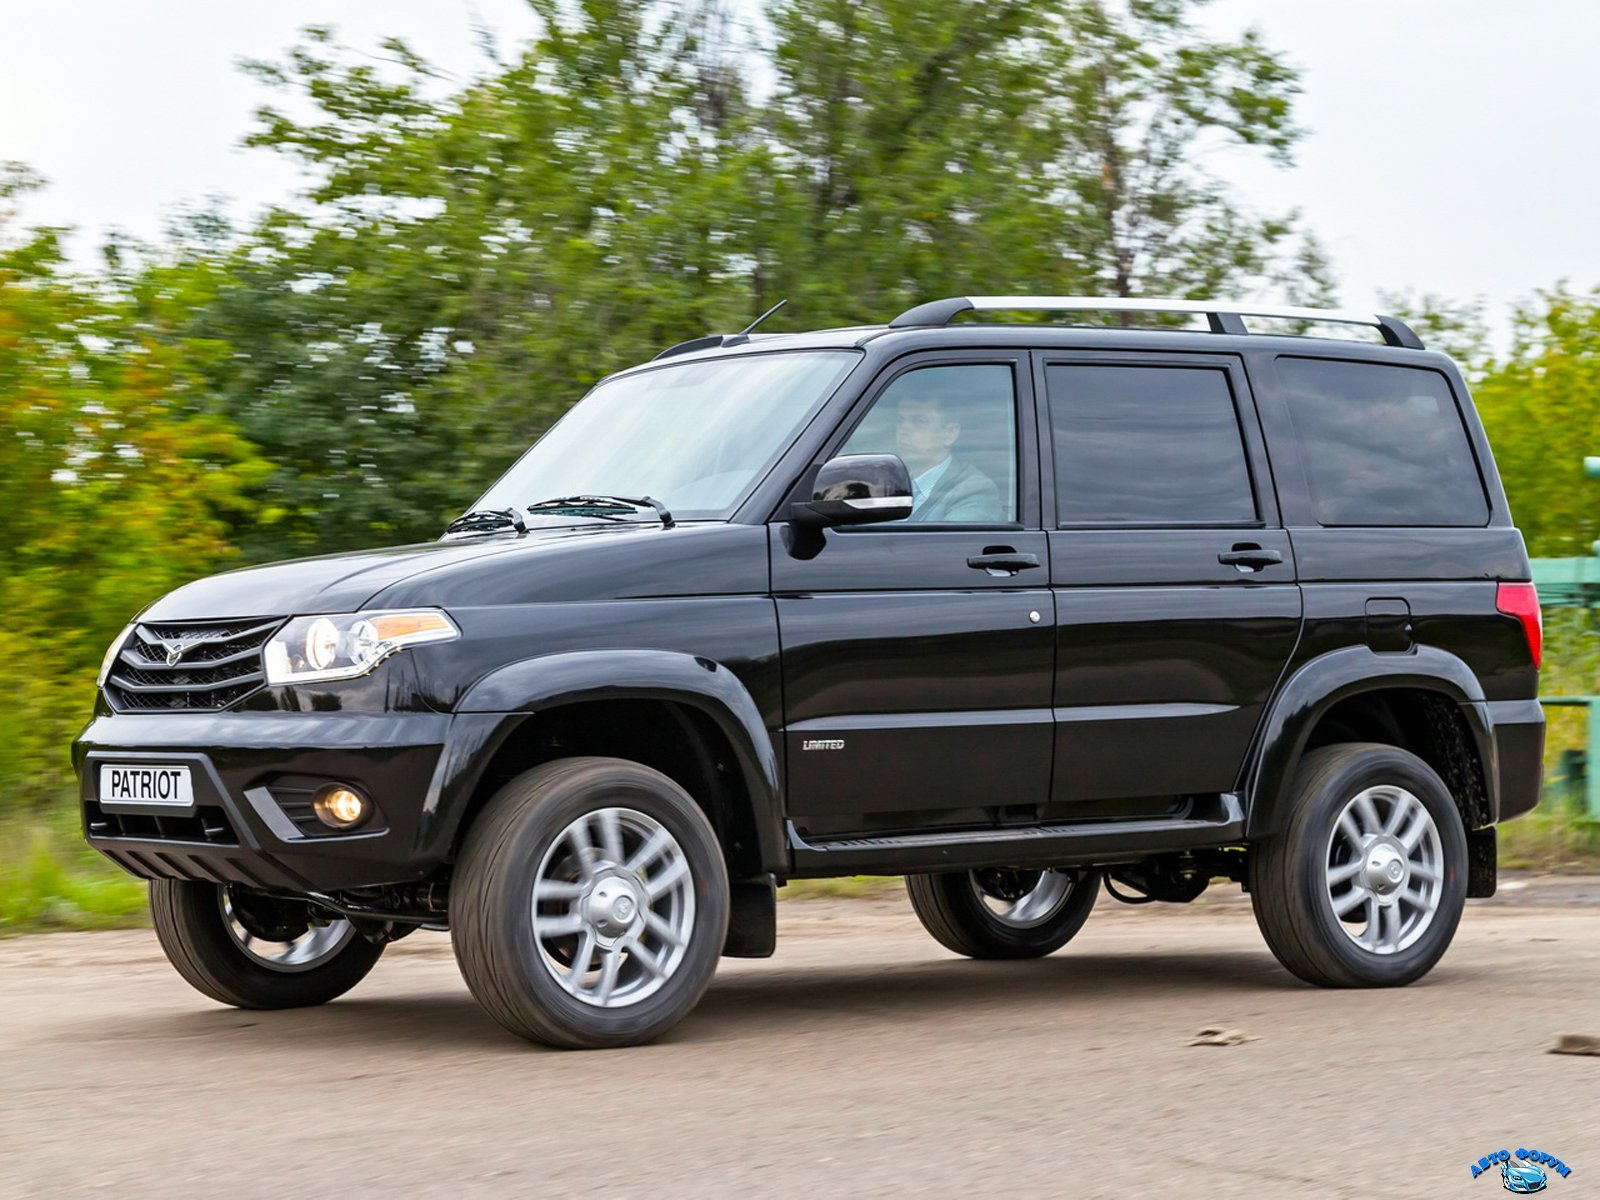 UAZ_3163 Patriot_SUV 5 door_2014.jpg